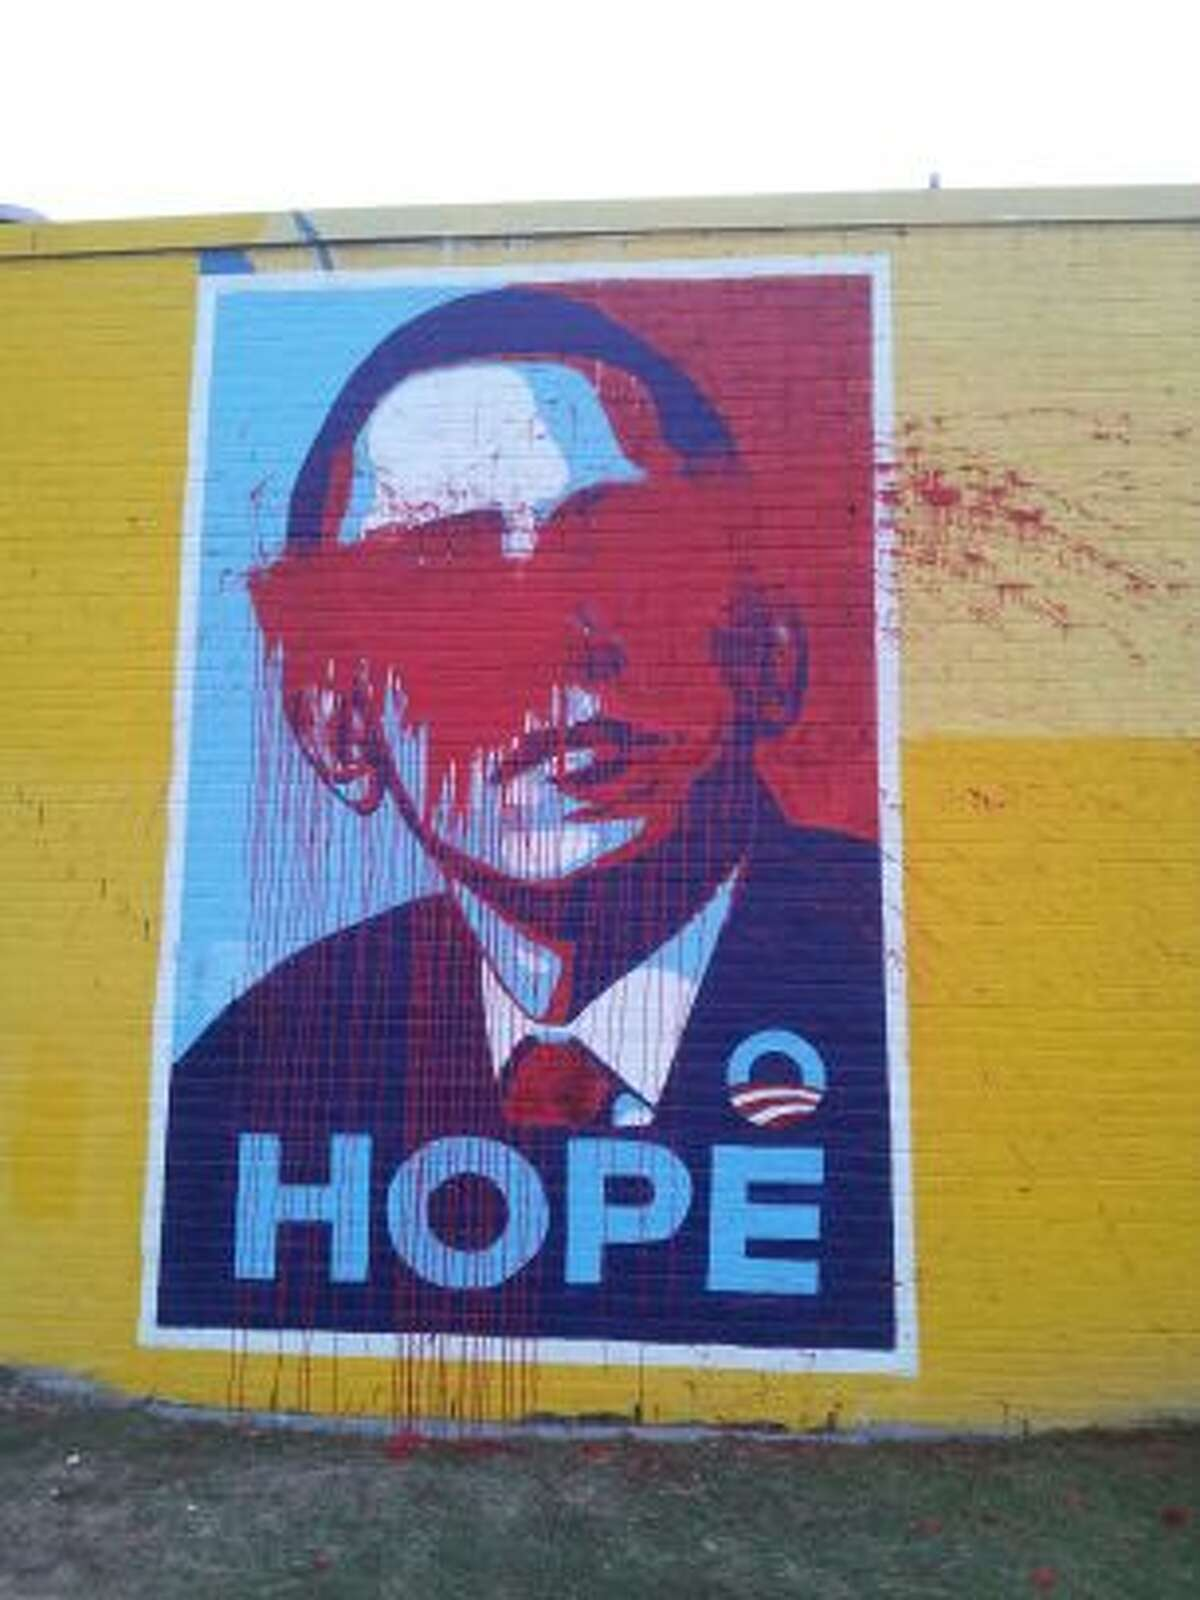 Vandals threw red paint on the mural of President Barack Obama facing The Breakfast Klub restaurant sometime early Monday (Courtesy photo, The Breakfast Klub)